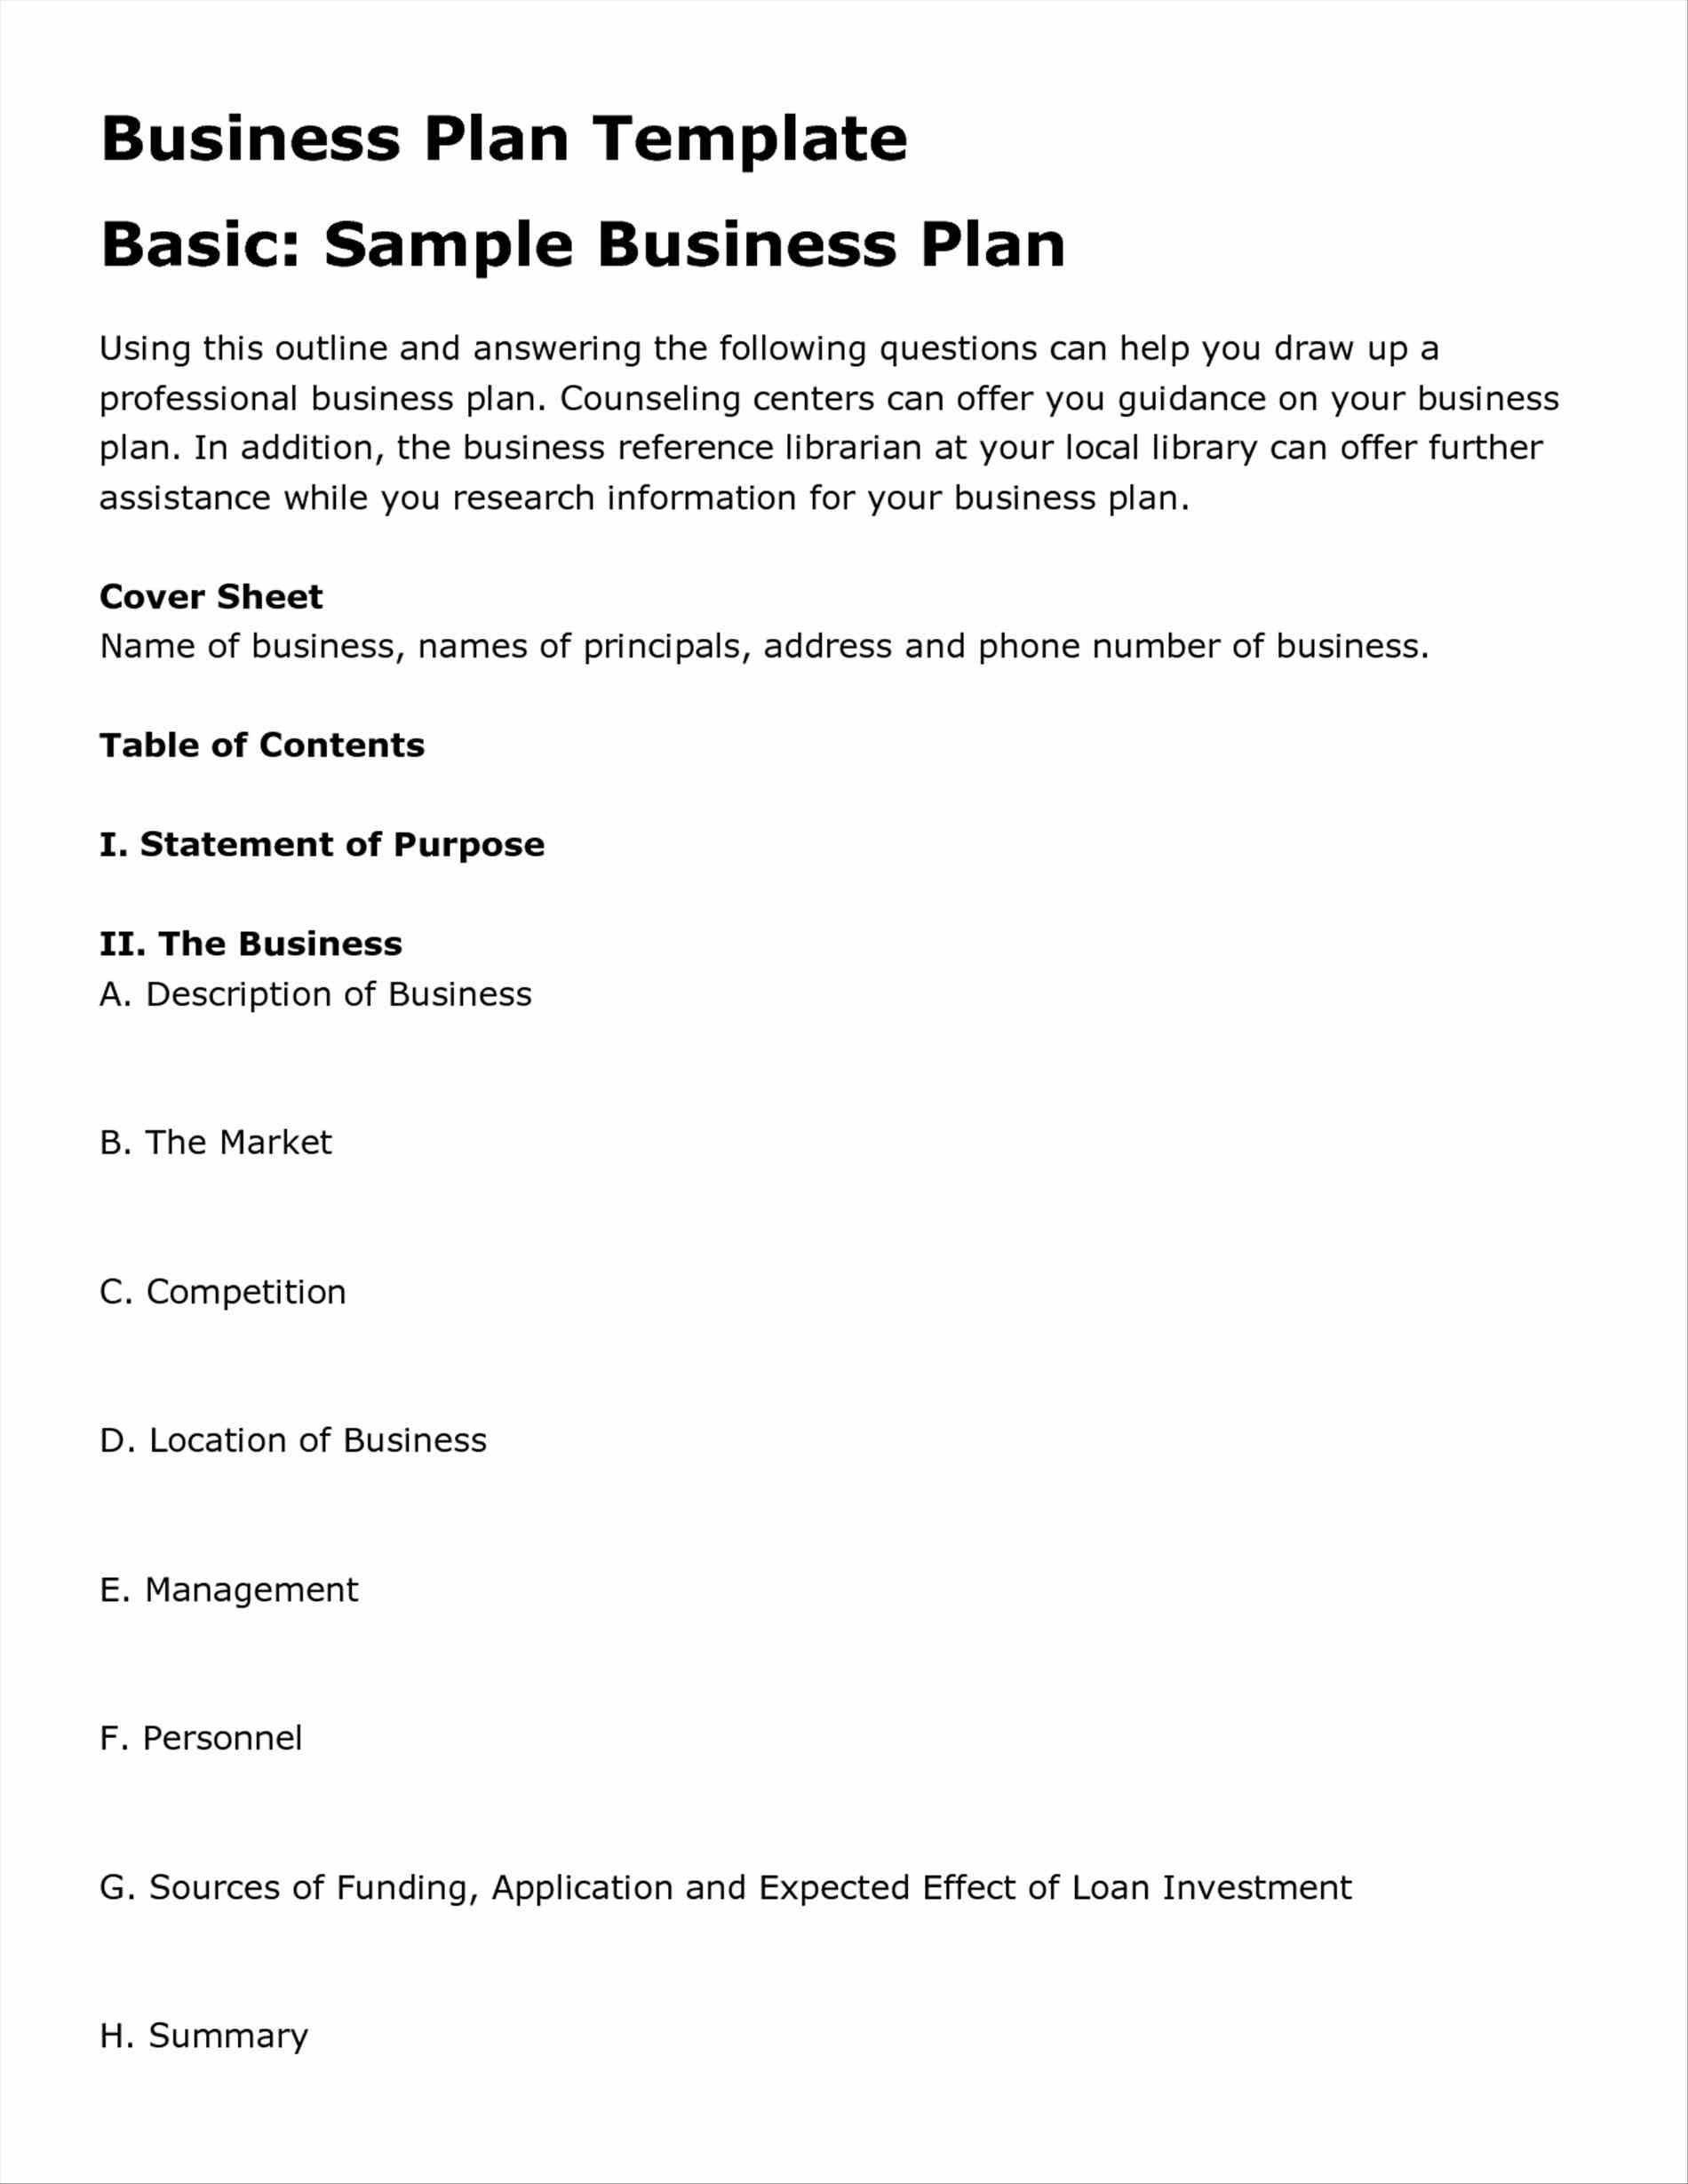 Business plan template restaurant templates in word excel pdf free business plan template restaurant templates in word excel pdf free cafe business plan template restaurant business plan templates in word excel flashek Choice Image